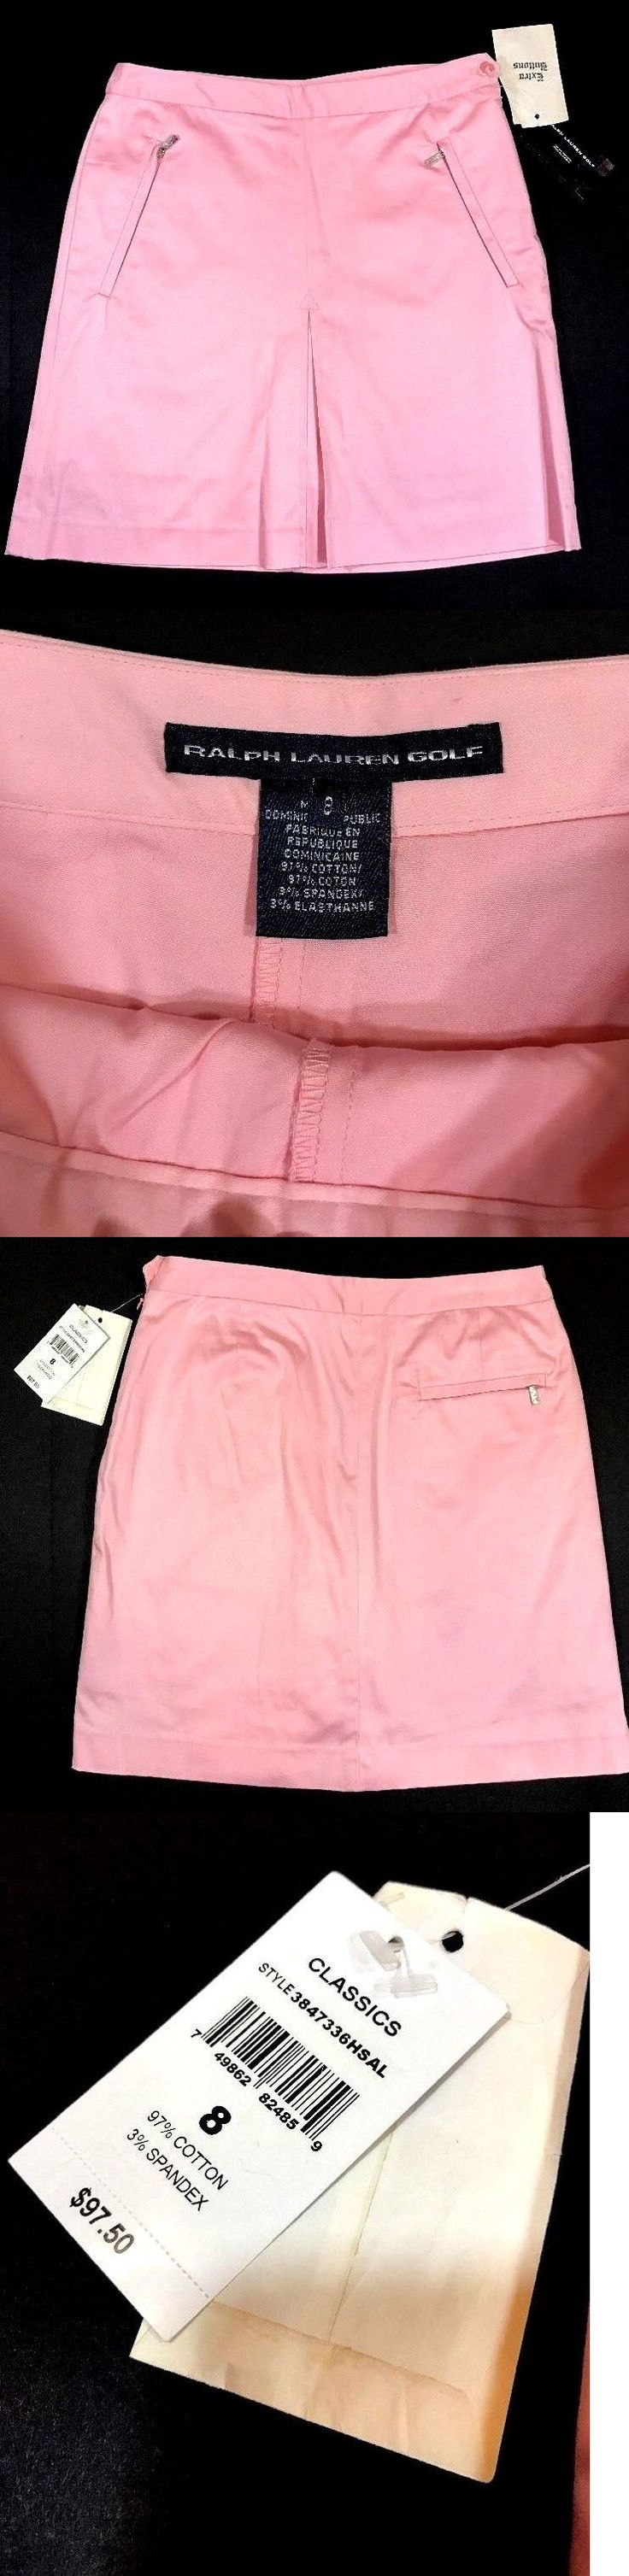 Skirts Skorts and Dresses 179003: New Nwt Ralph Lauren Golf Polo Womens Pink Skirt Size 8 M L $97.50 Skort Dress BUY IT NOW ONLY: $37.03